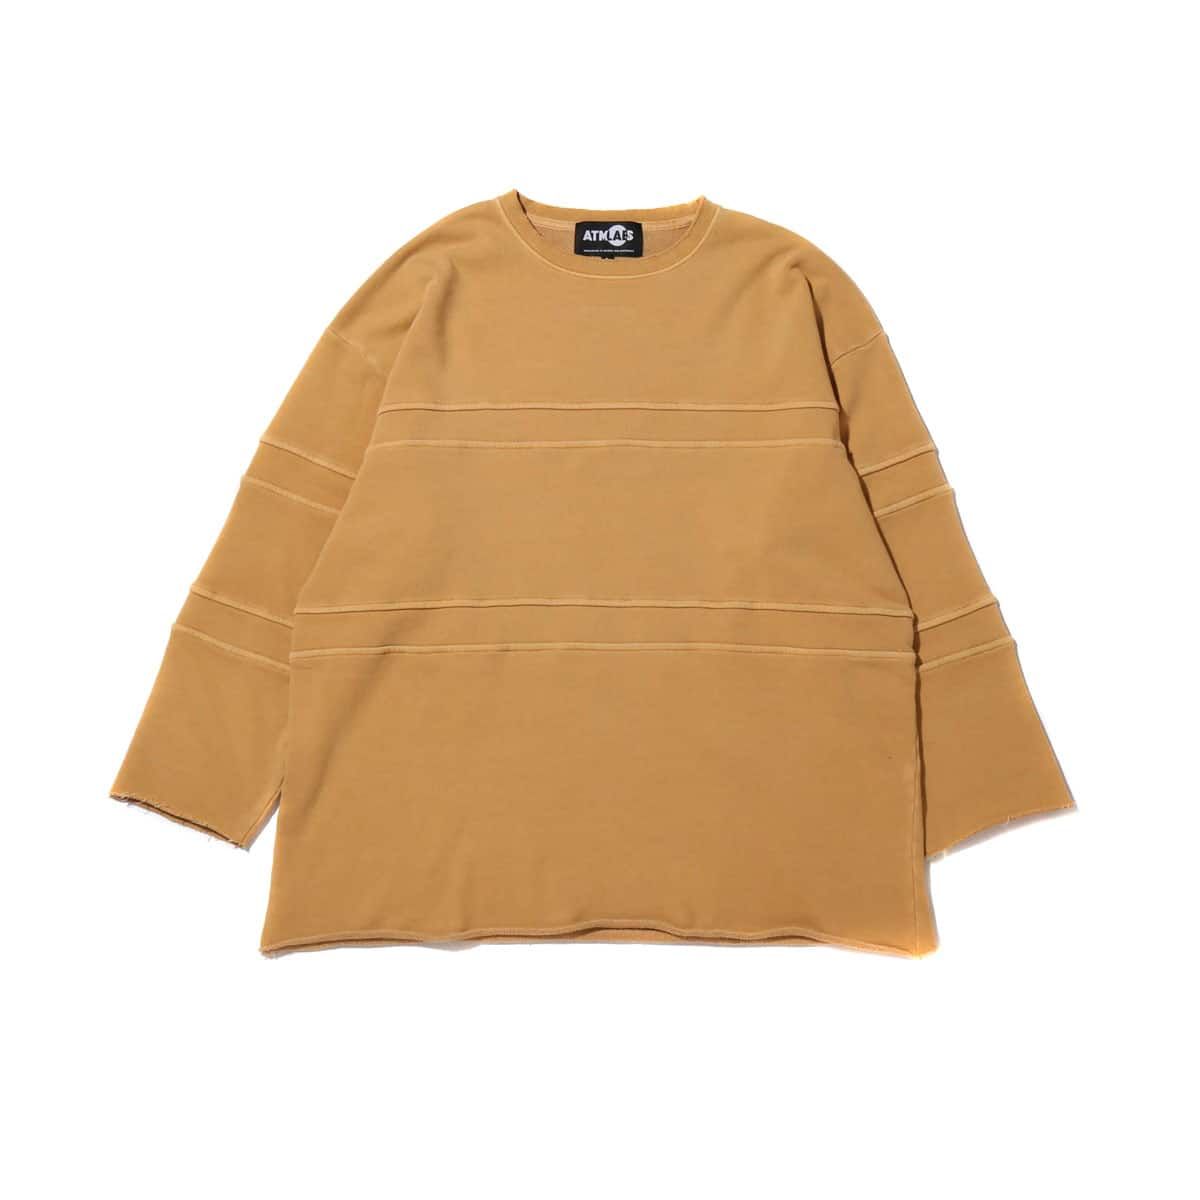 ATMOS LAB OVERDYED CUT OFF BIG SWEAT CAMEL 19SS-I_photo_large